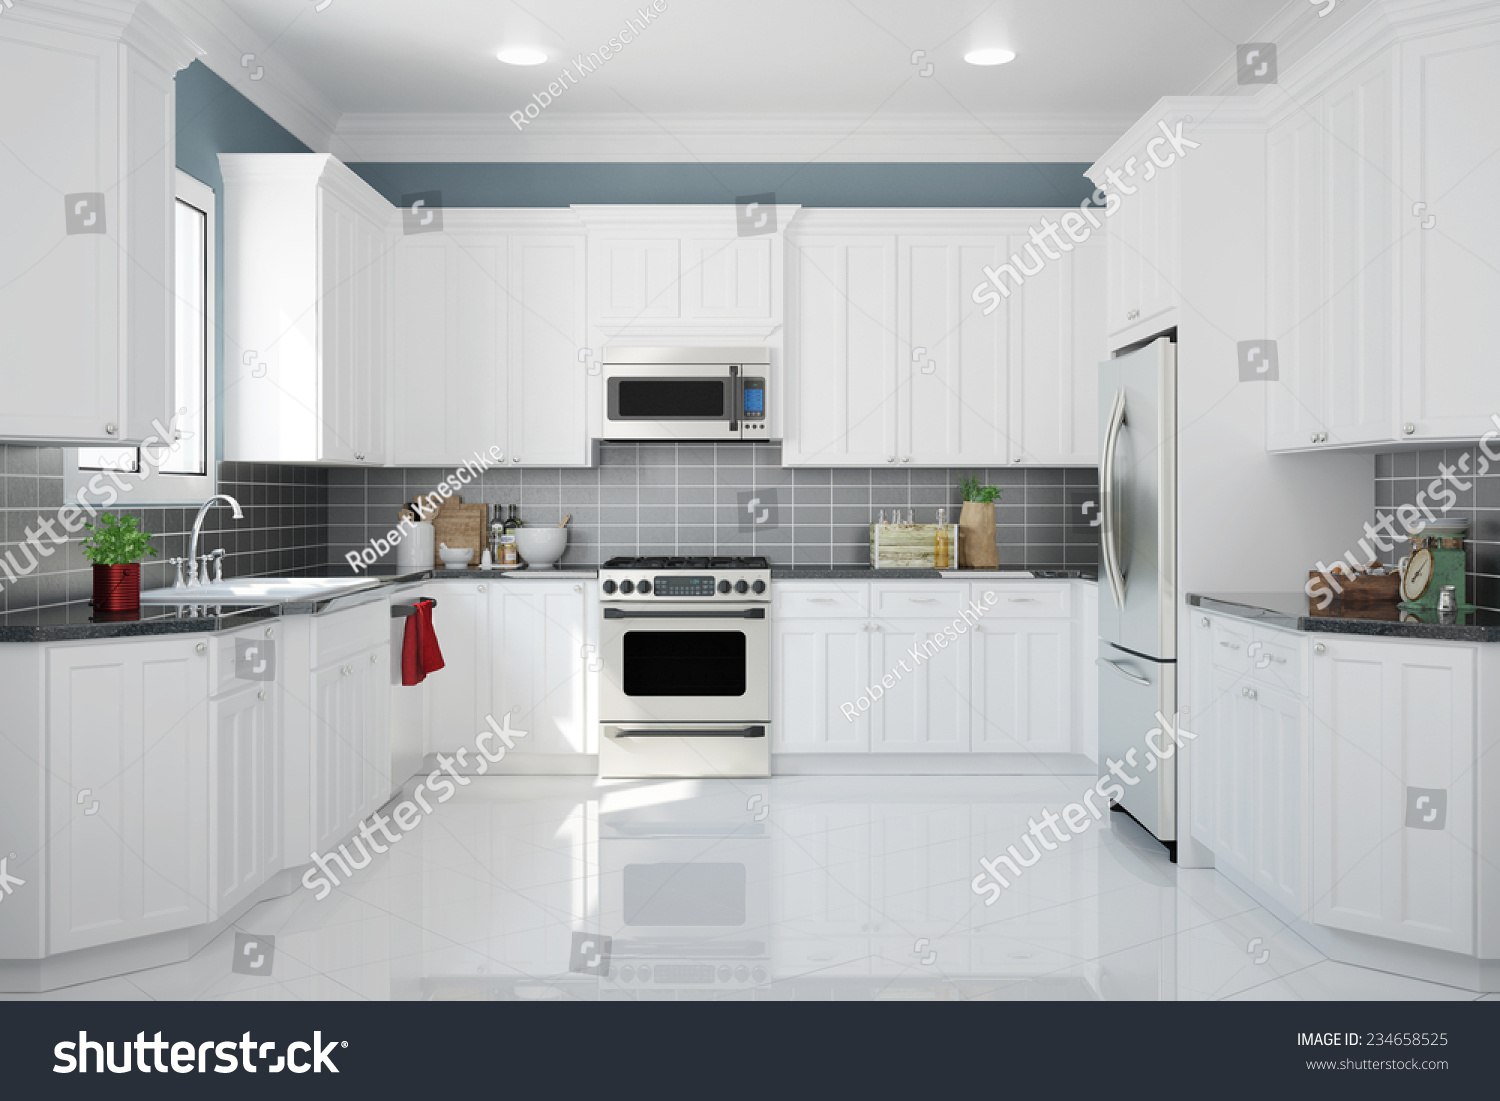 Interior New White Kitchen Kitchenware Clean Stock Illustration 234658525 S